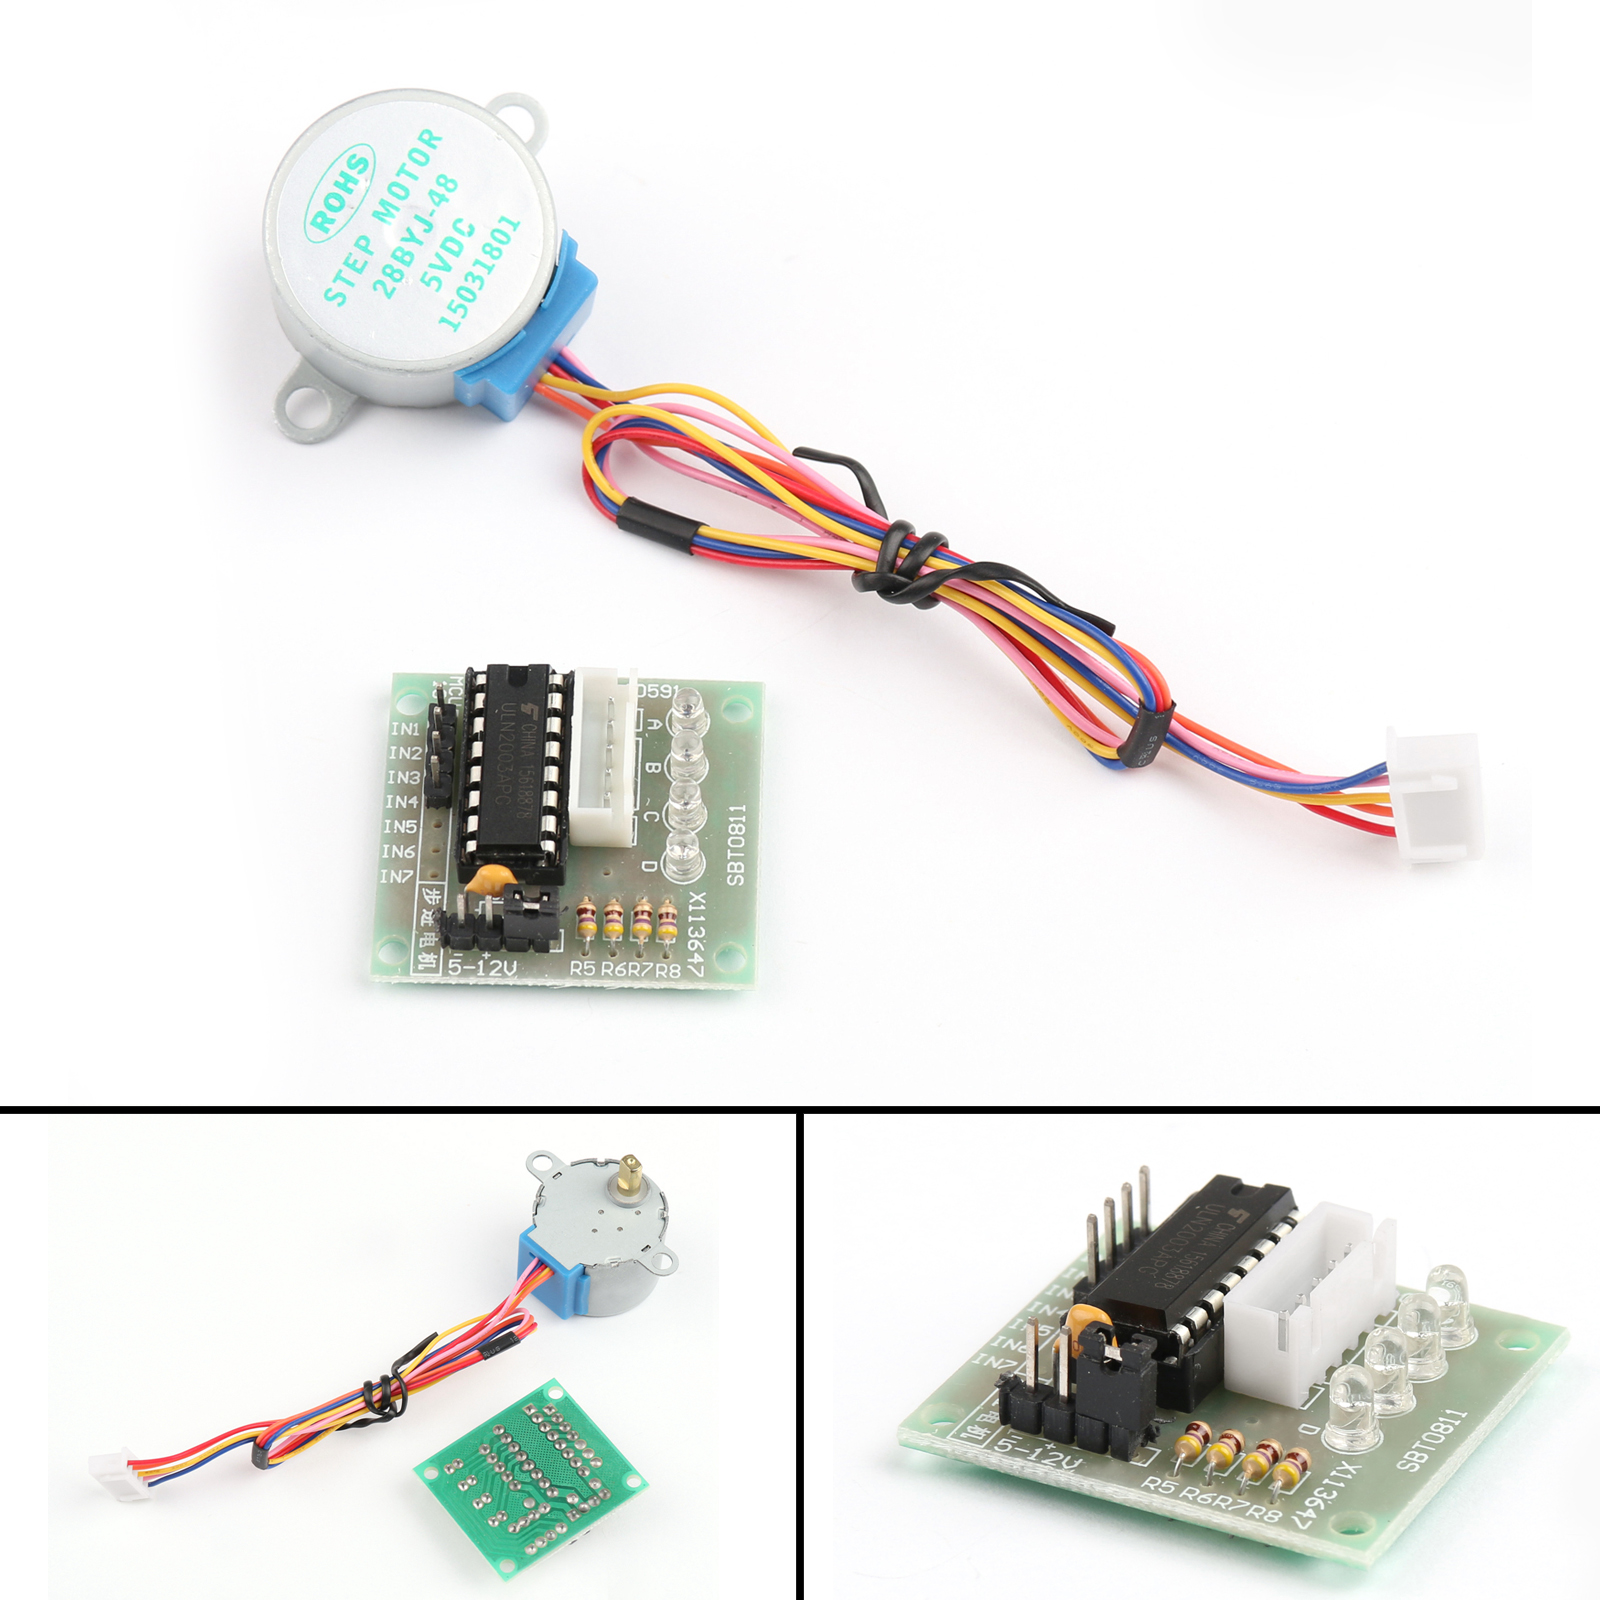 Dc 5v Stepper Motor Uln2003 Driver Test Module Board 28byj 48 For 12v Power Pigtail Male 21mm Cable Plug Wire Connector Ebay Picture